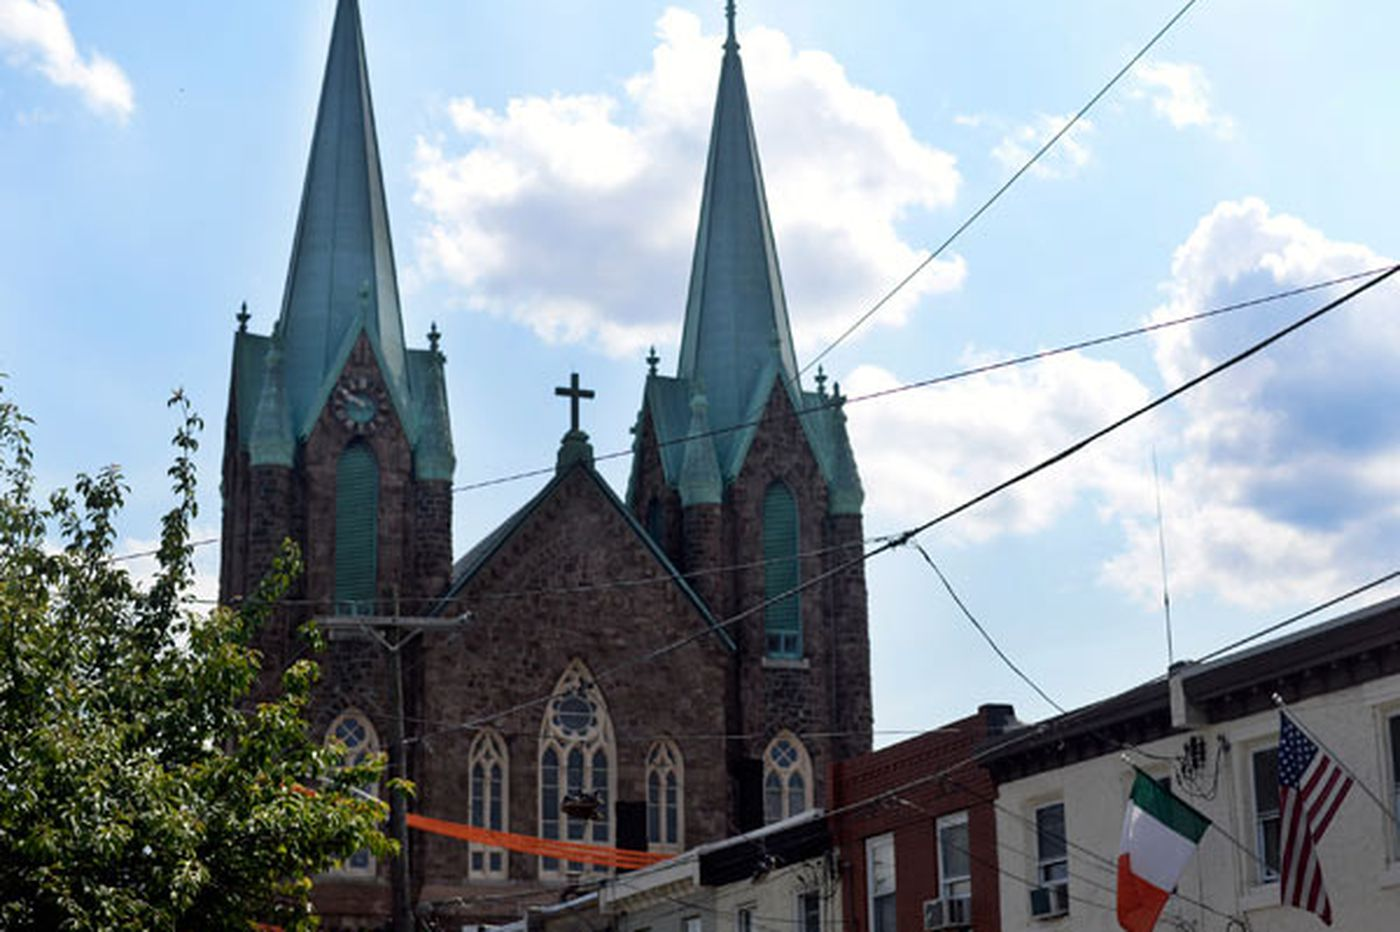 St. Laurentius in Fishtown deemed 'precarious' days before Council vote to expedite redevelopment